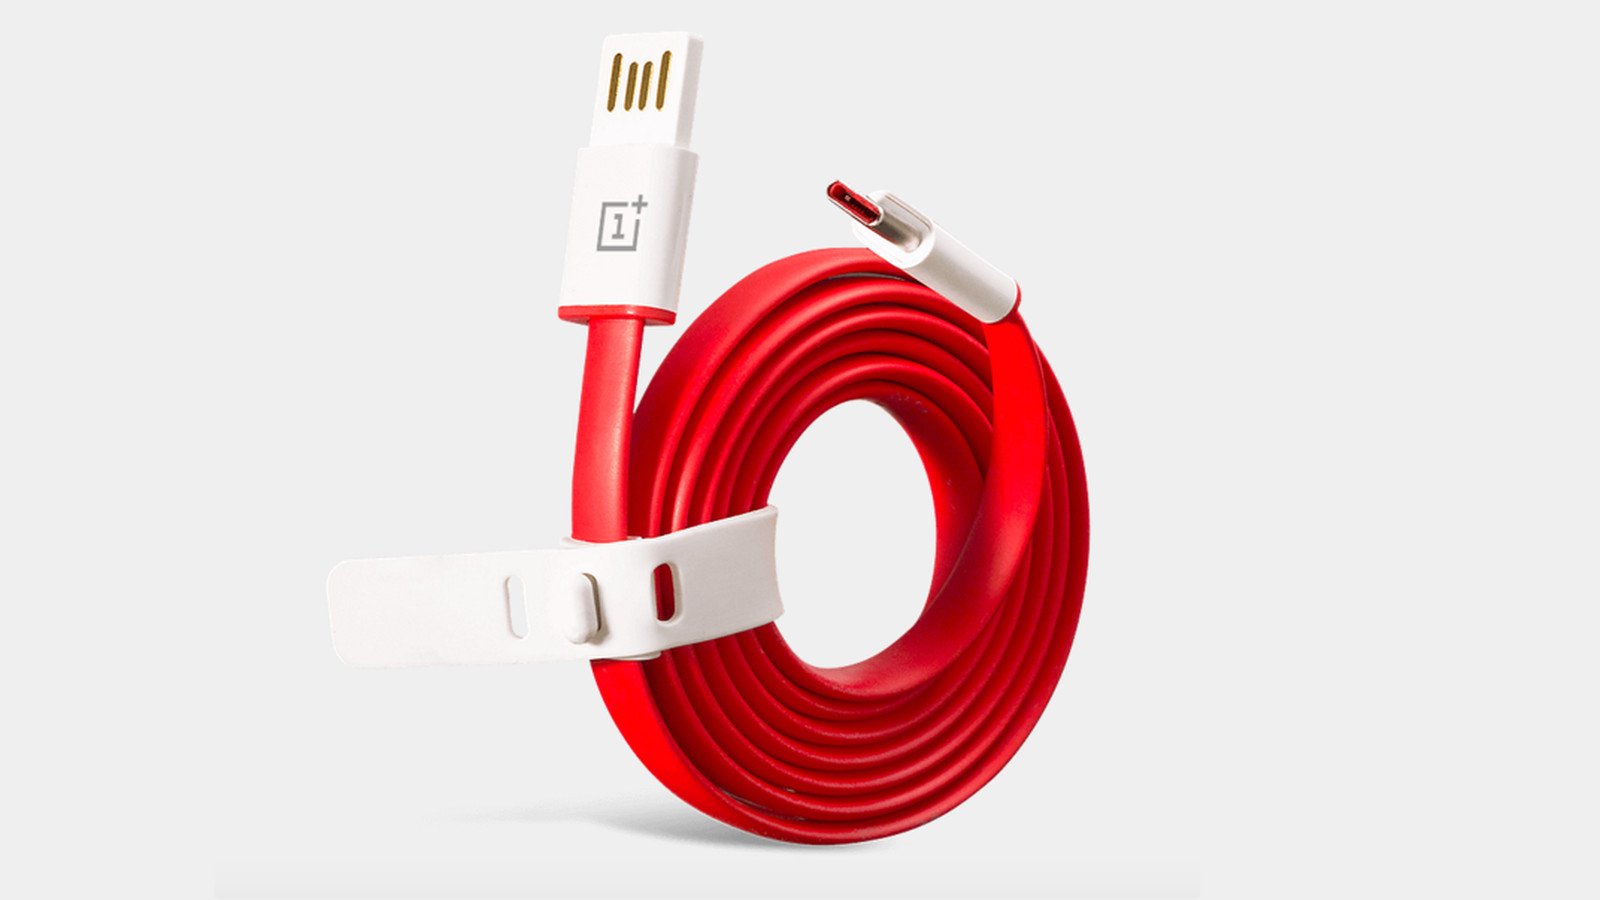 Google Engineer Says You Shouldnt Buy Oneplus Usb Type C Cables Wiring Charger The Verge